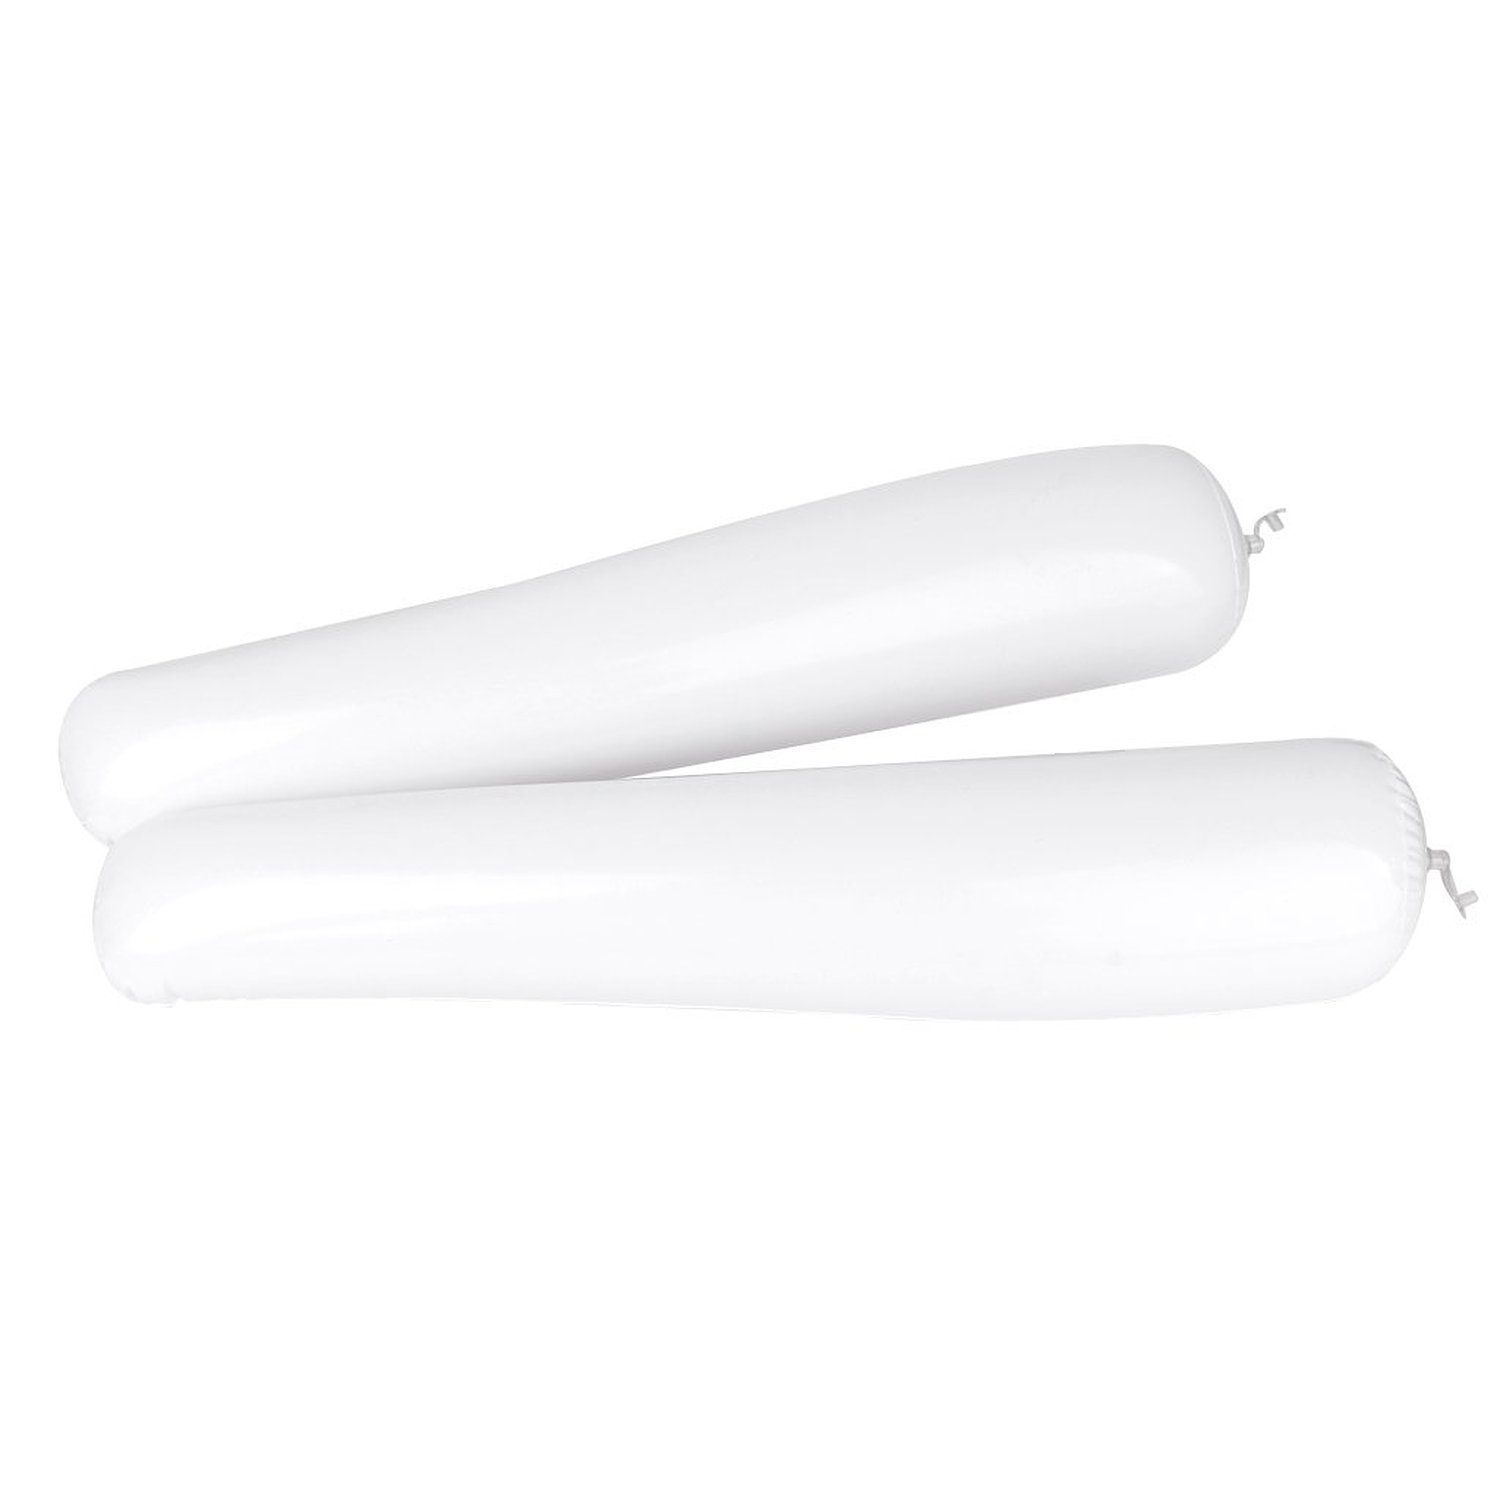 ASDS 1 pair of White inflatable Shoe Support in plastic inflatable Shoe brace with Boots in plastic Shoehorns 50cm - White camewin 0804 elastic wrist brace wrap support yellow pair